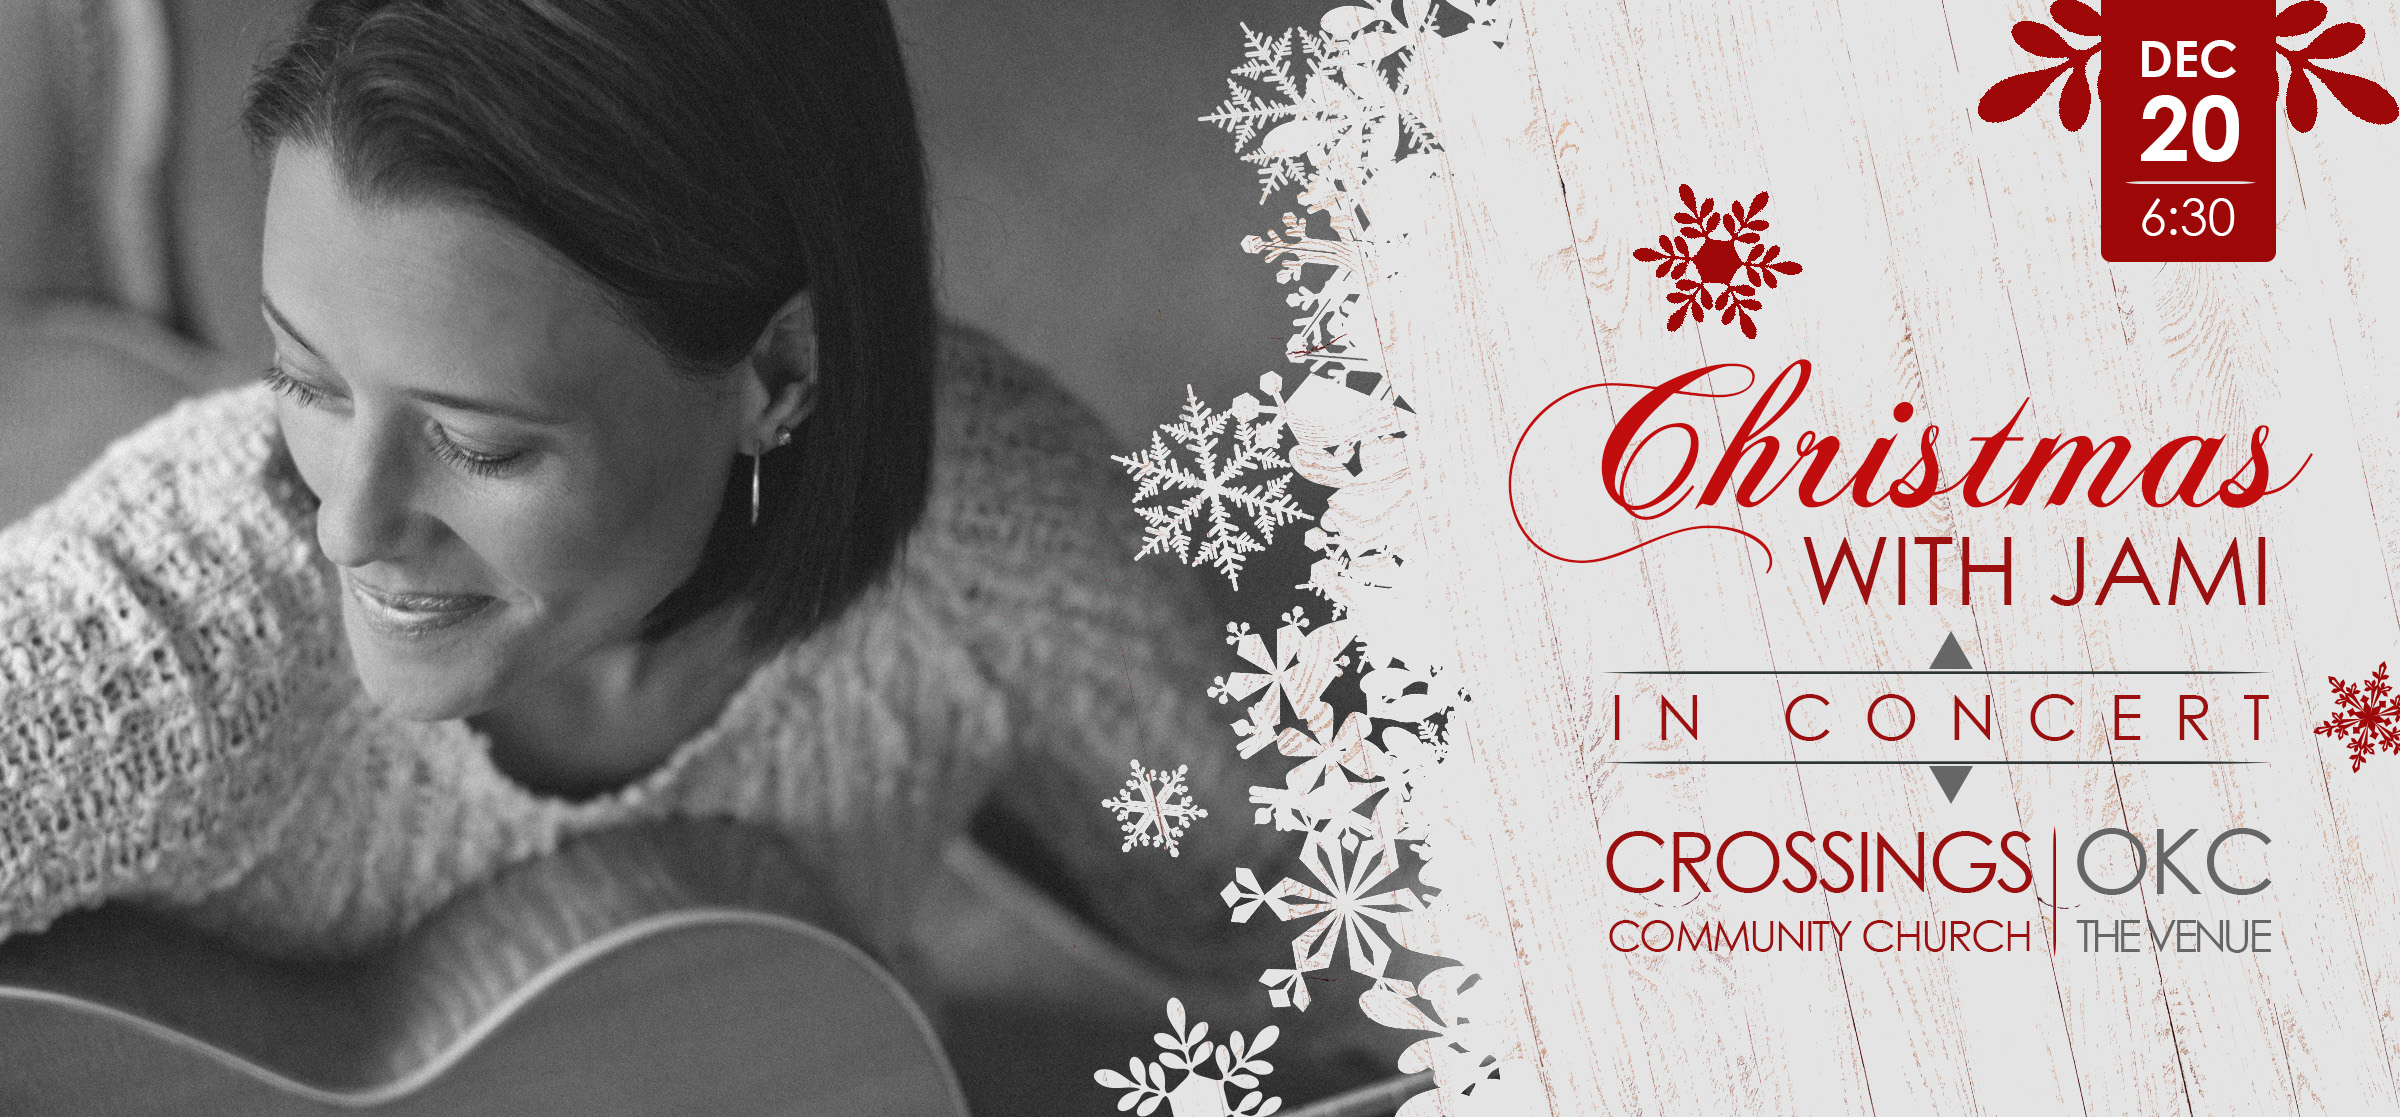 Crossings Community Church Christmas Concert